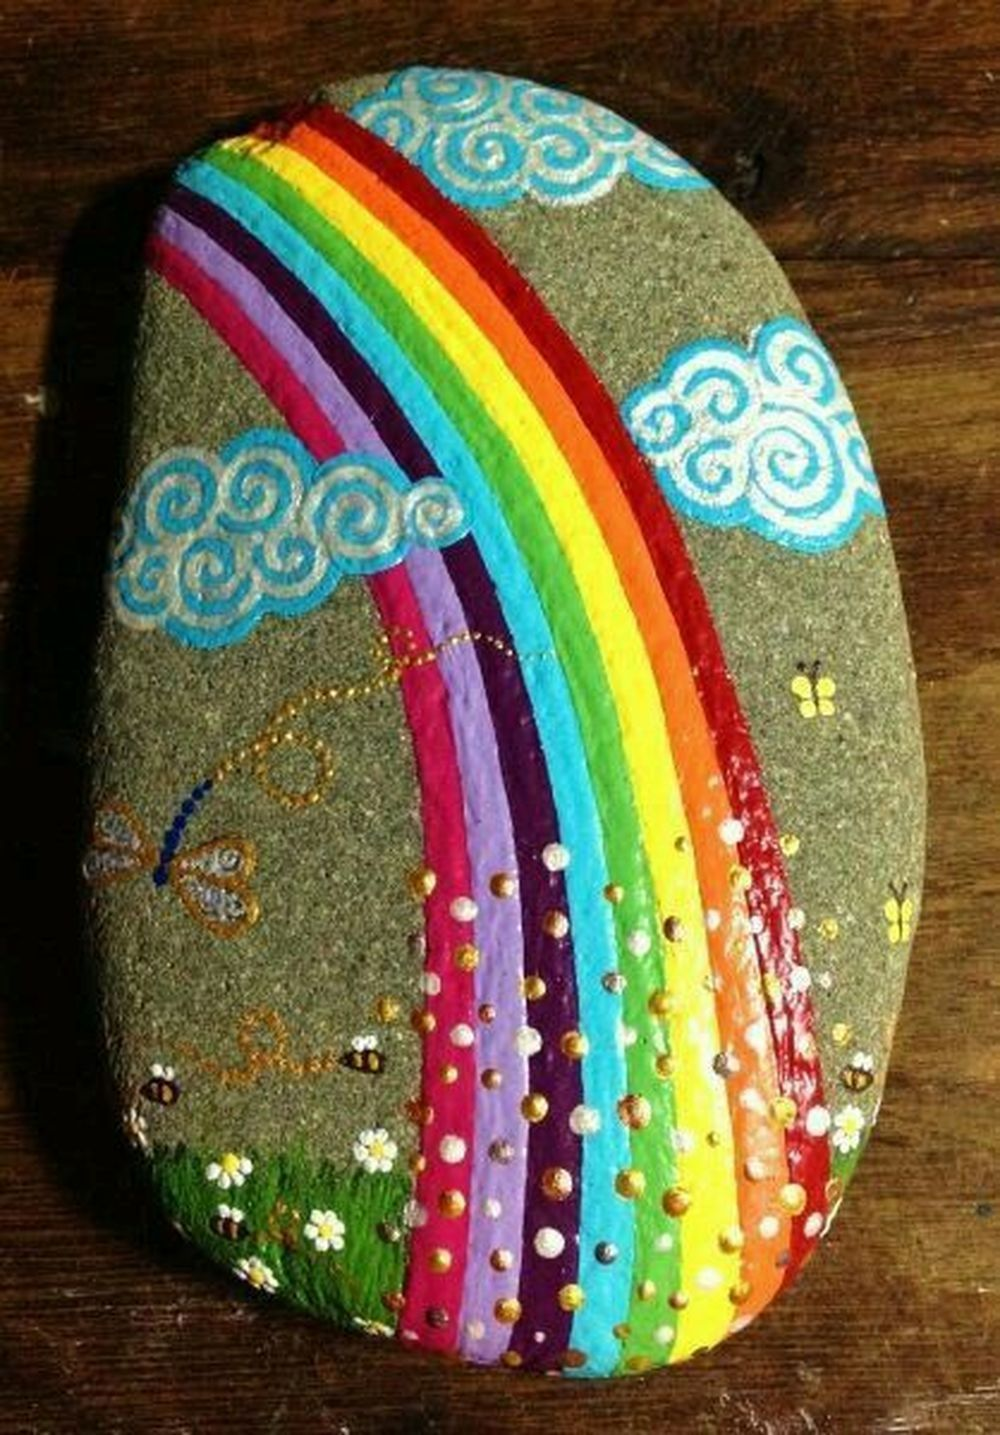 20 Incredible Diy Painted Rock Design Ideas In 2020 With Images